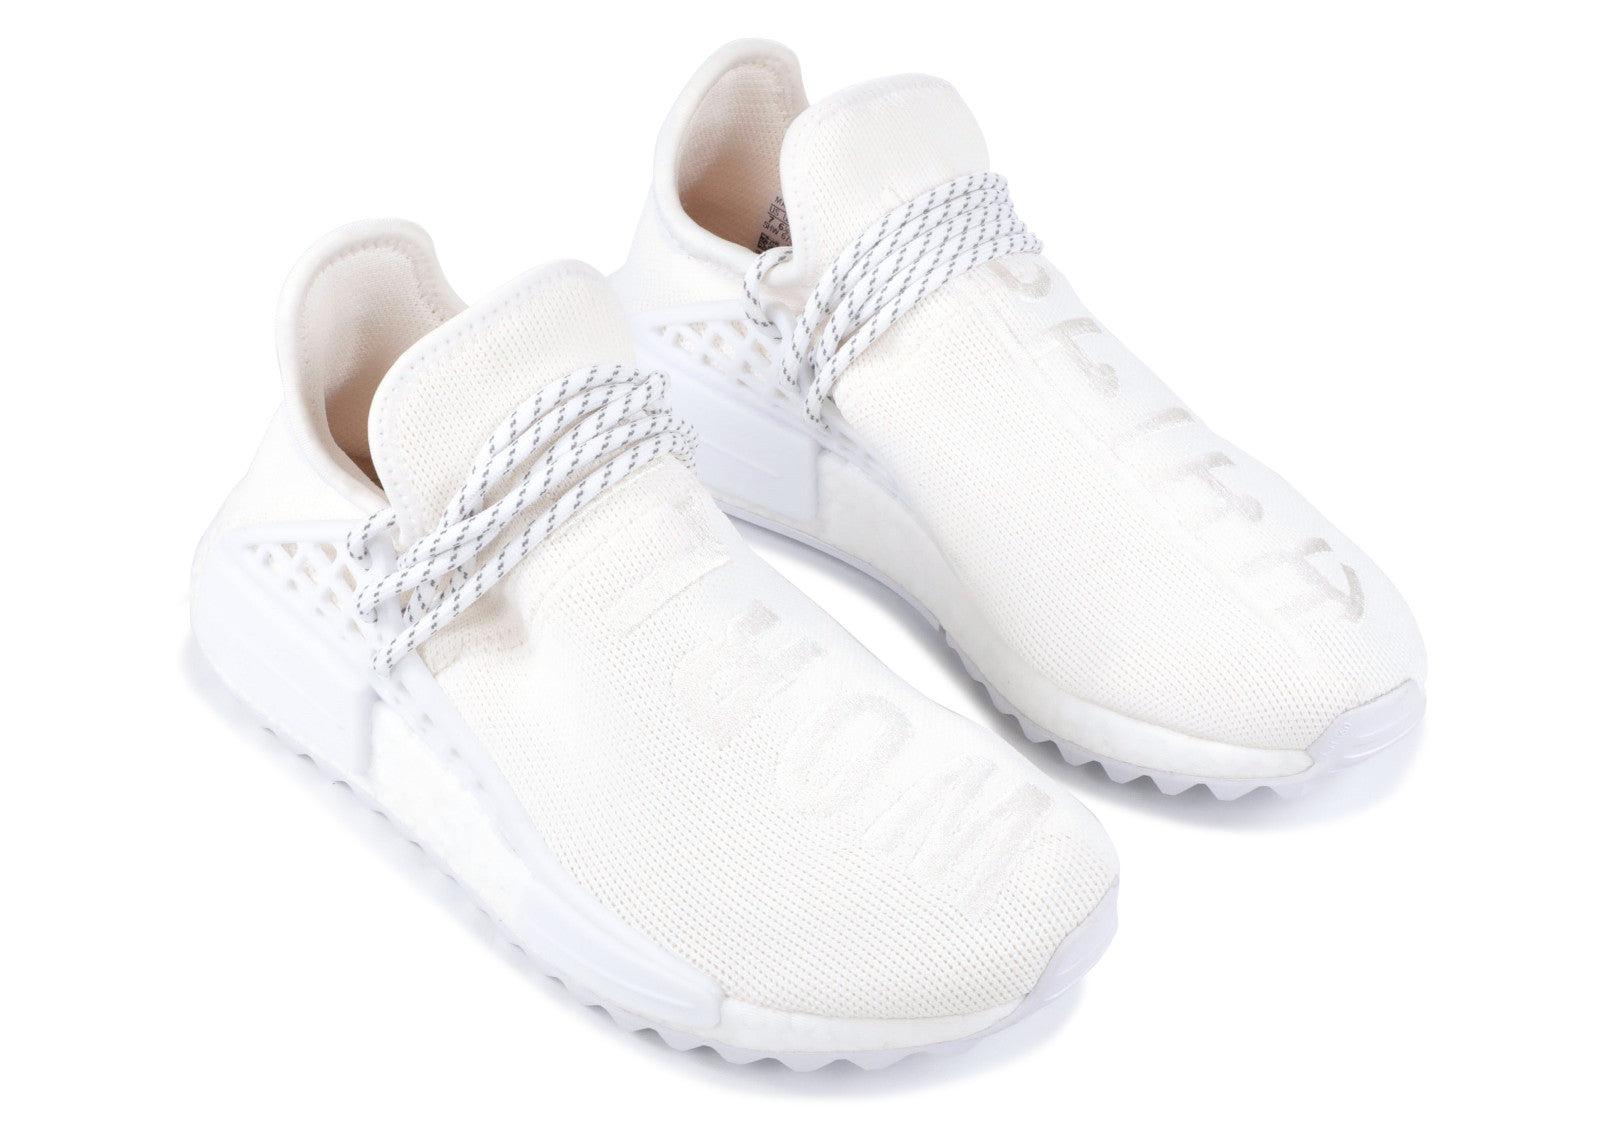 innovative design 117e9 55de4 PHARELL HUMAN RACE TRAIL WHITE/CREAM